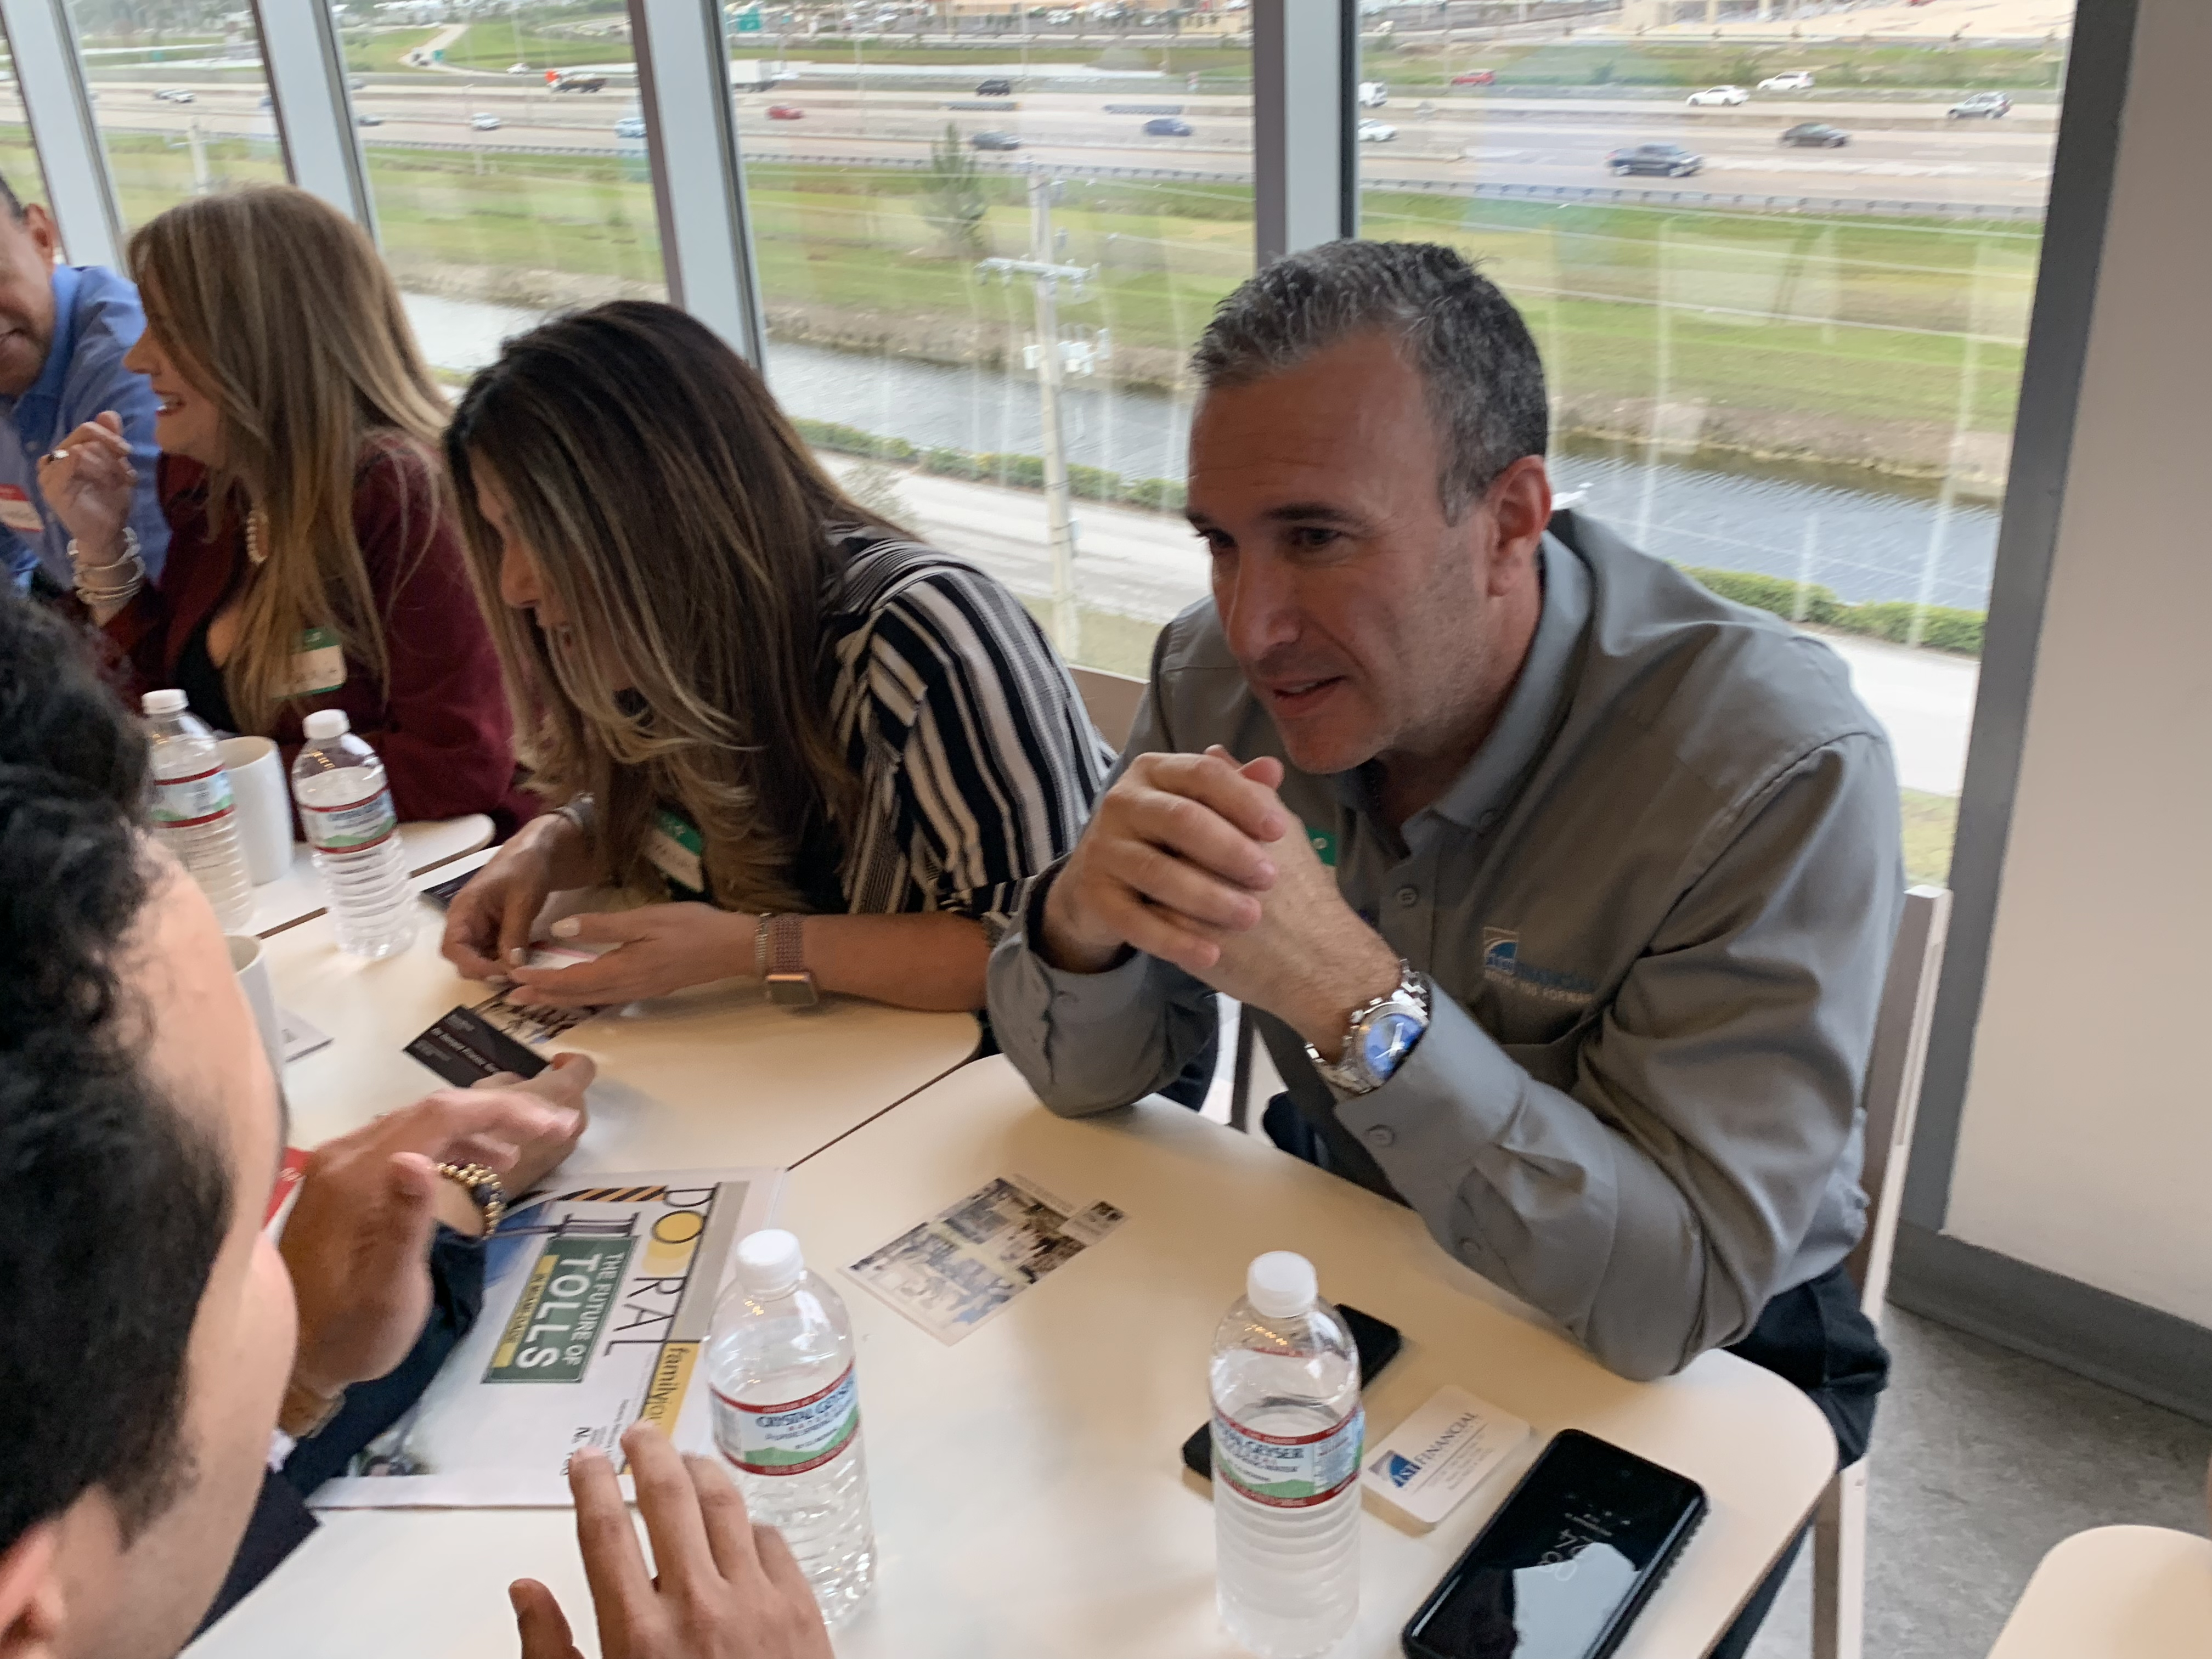 Doral Chamber of Commerce IKEA Speed Networking Event, DCC member listening to another member talk about their business.